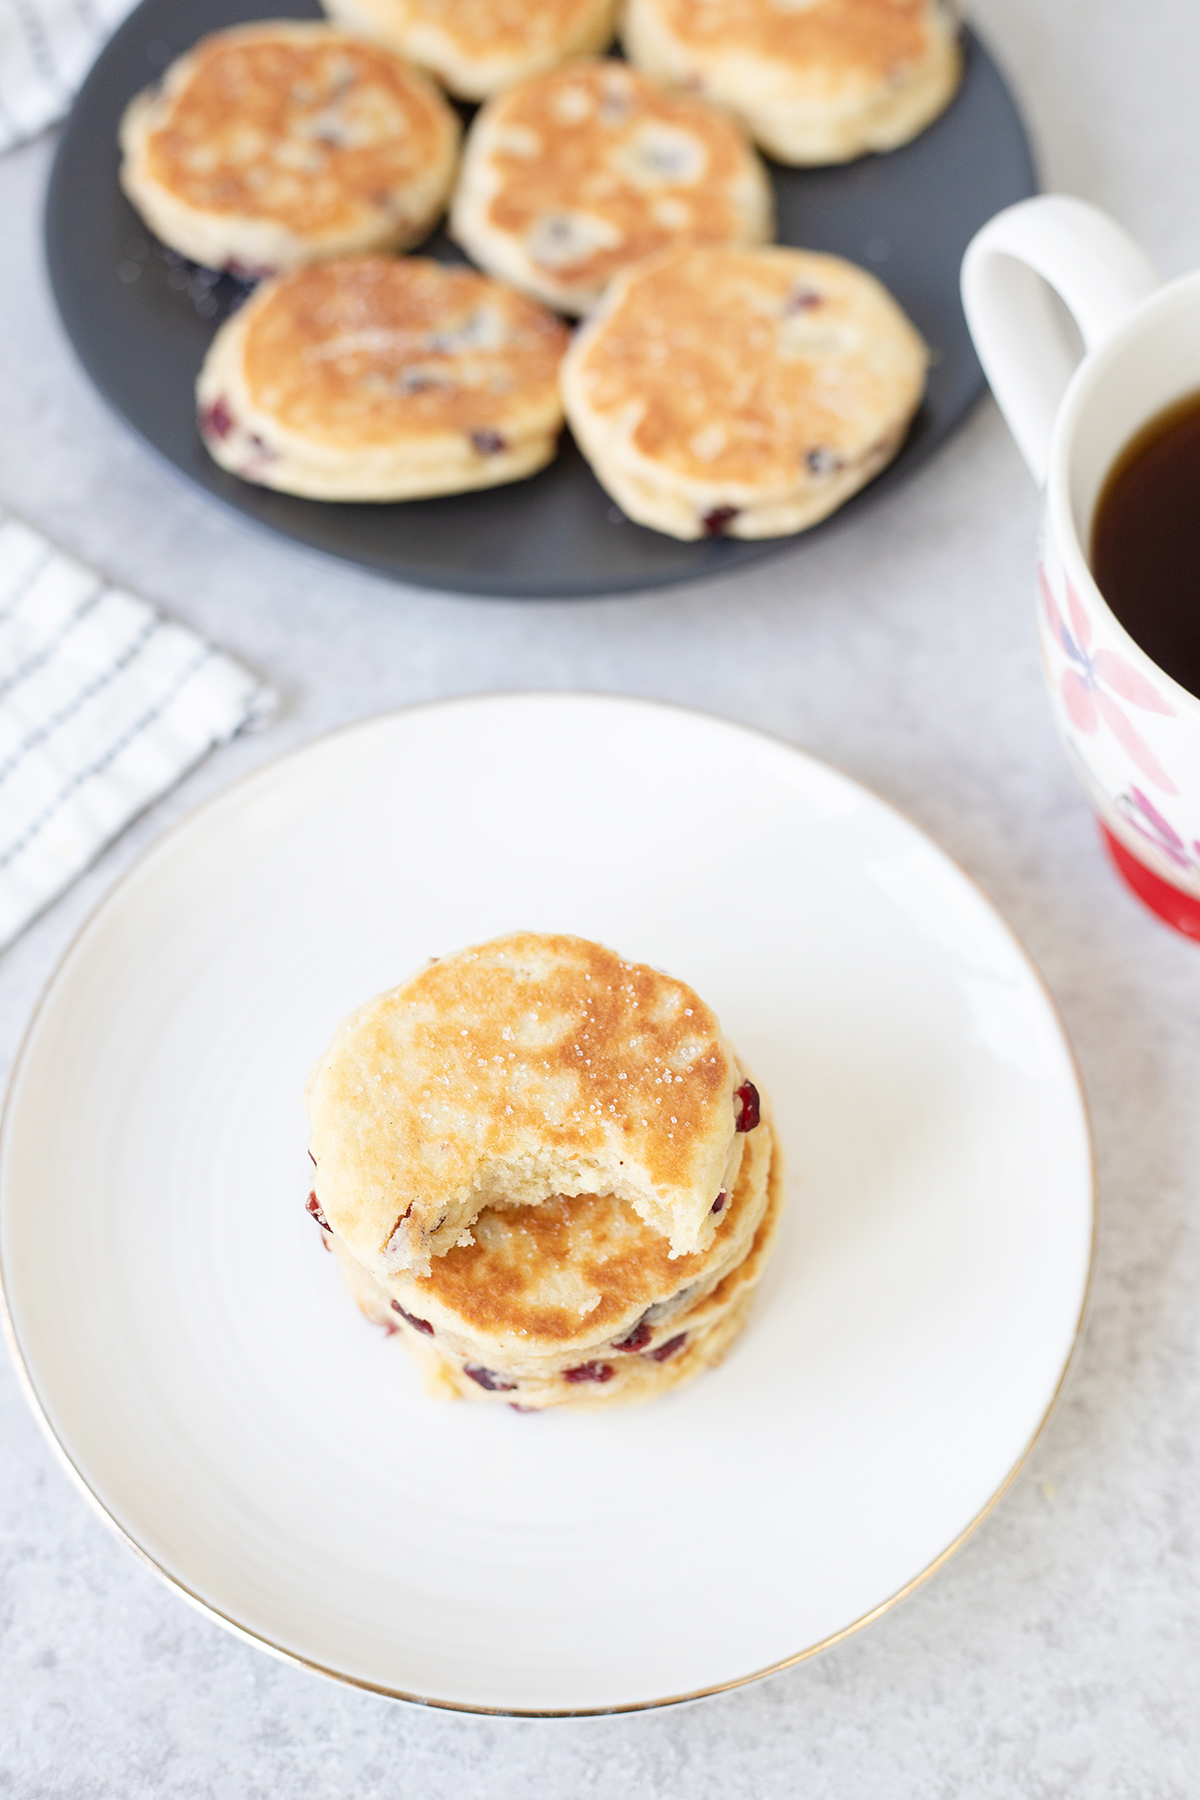 Welsh Cookies - Welsh Cakes